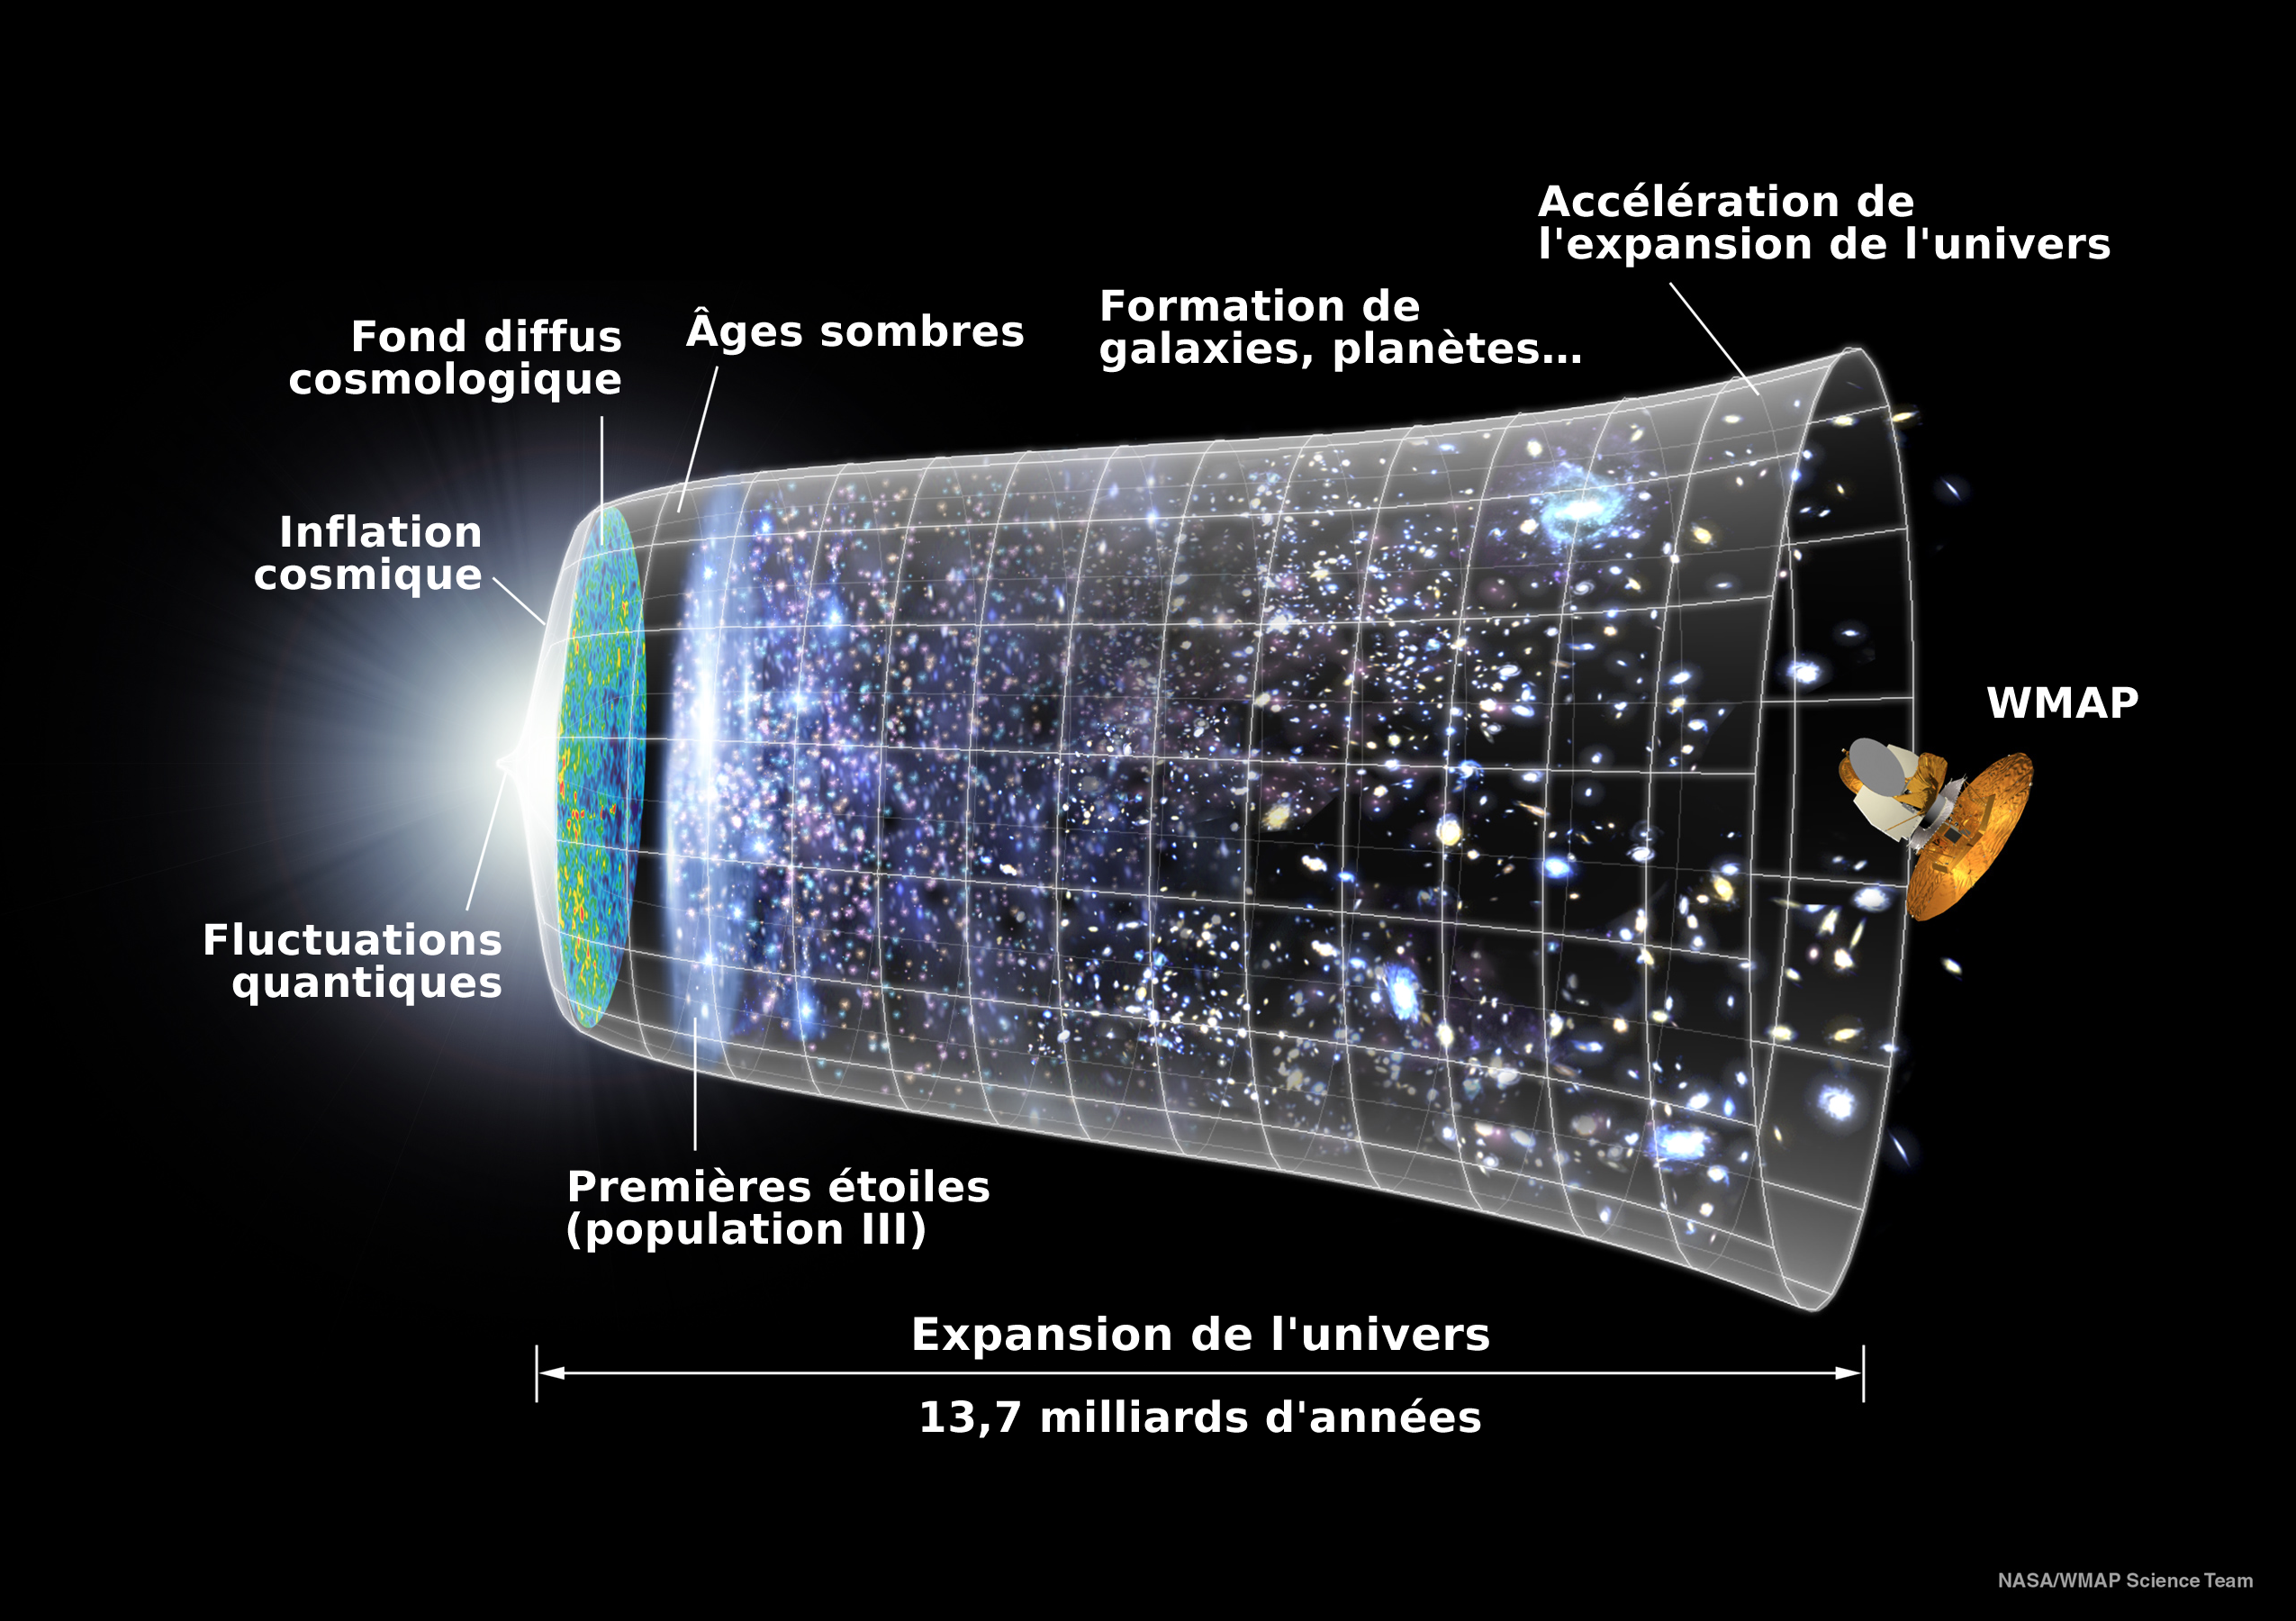 Timeline Expansion de l'univers